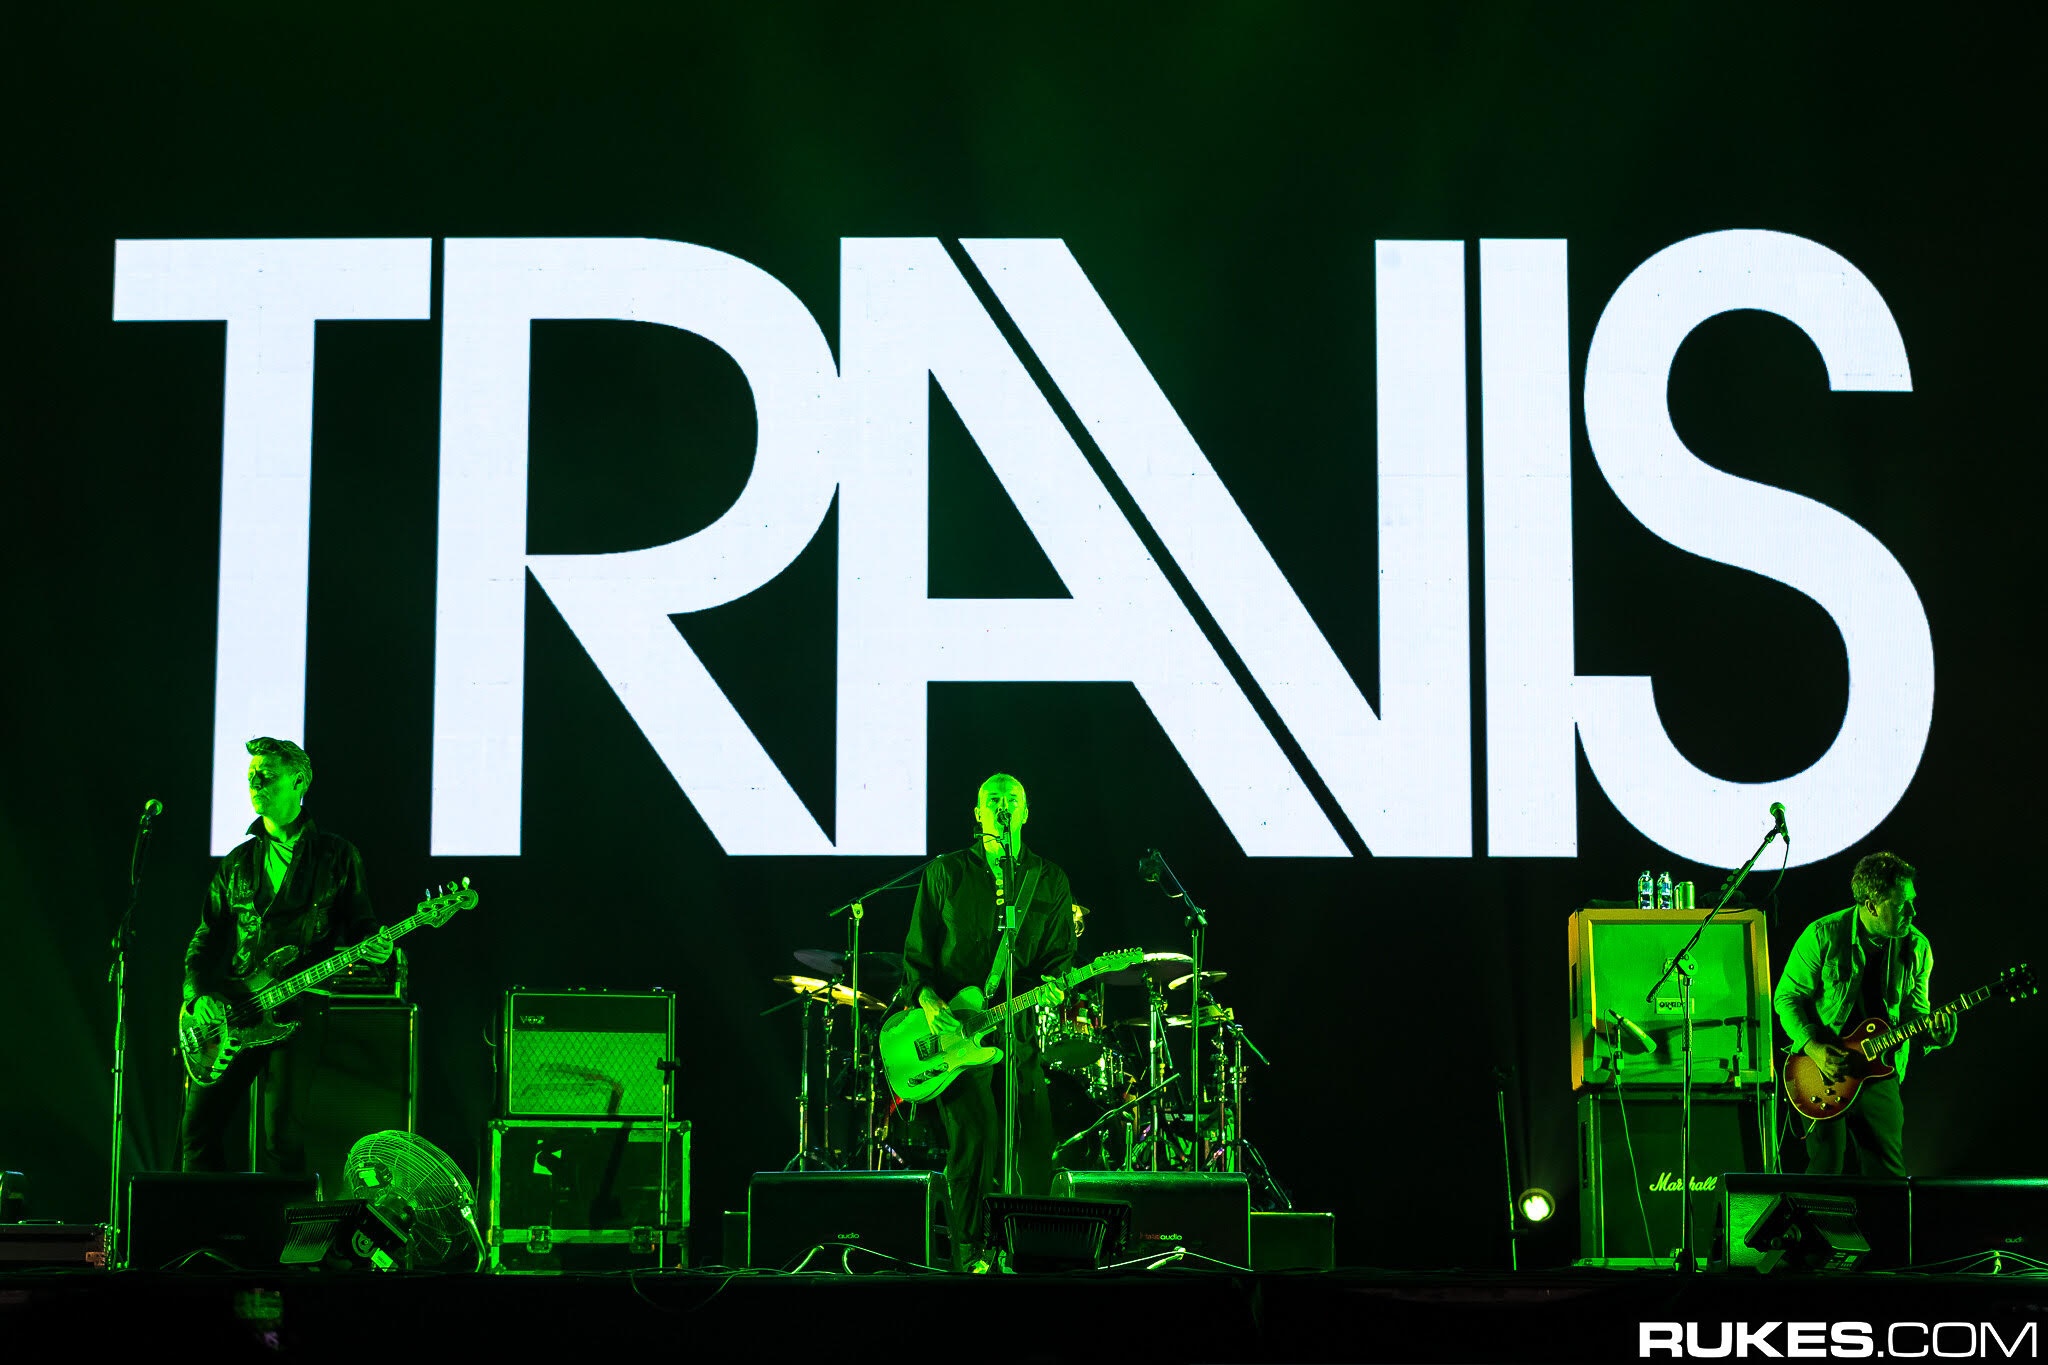 Copy of WTF19 - Day 2 - Scottish Band Travis Made Their Indonesian Debut at WTF19.jpg